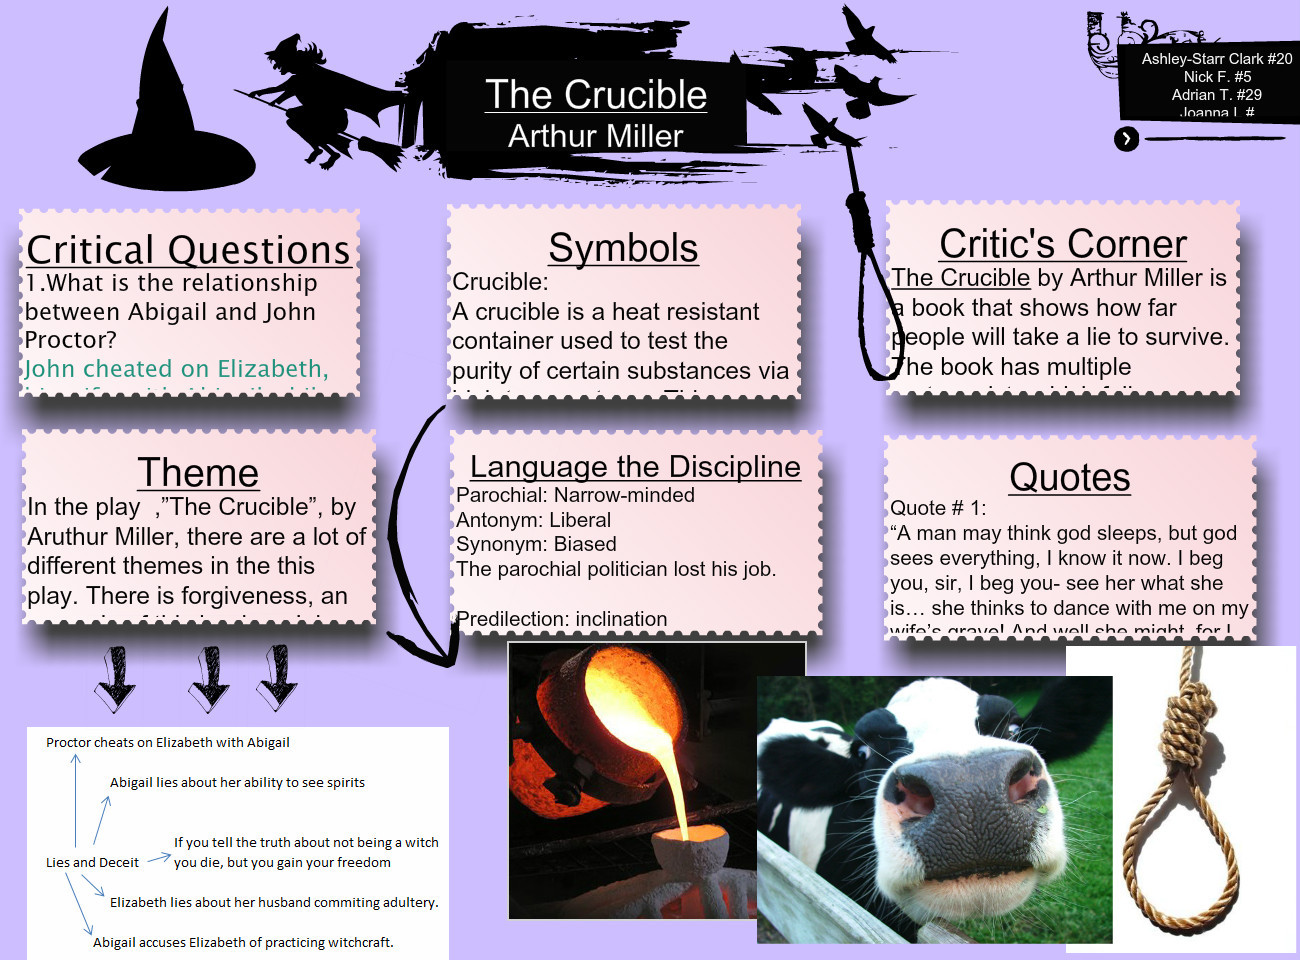 the crucible essay themes The crucible is a play by arthur miller the crucible study guide contains a biography of arthur miller, literature essays, quiz questions, major themes, characters, and a full summary and analysis.